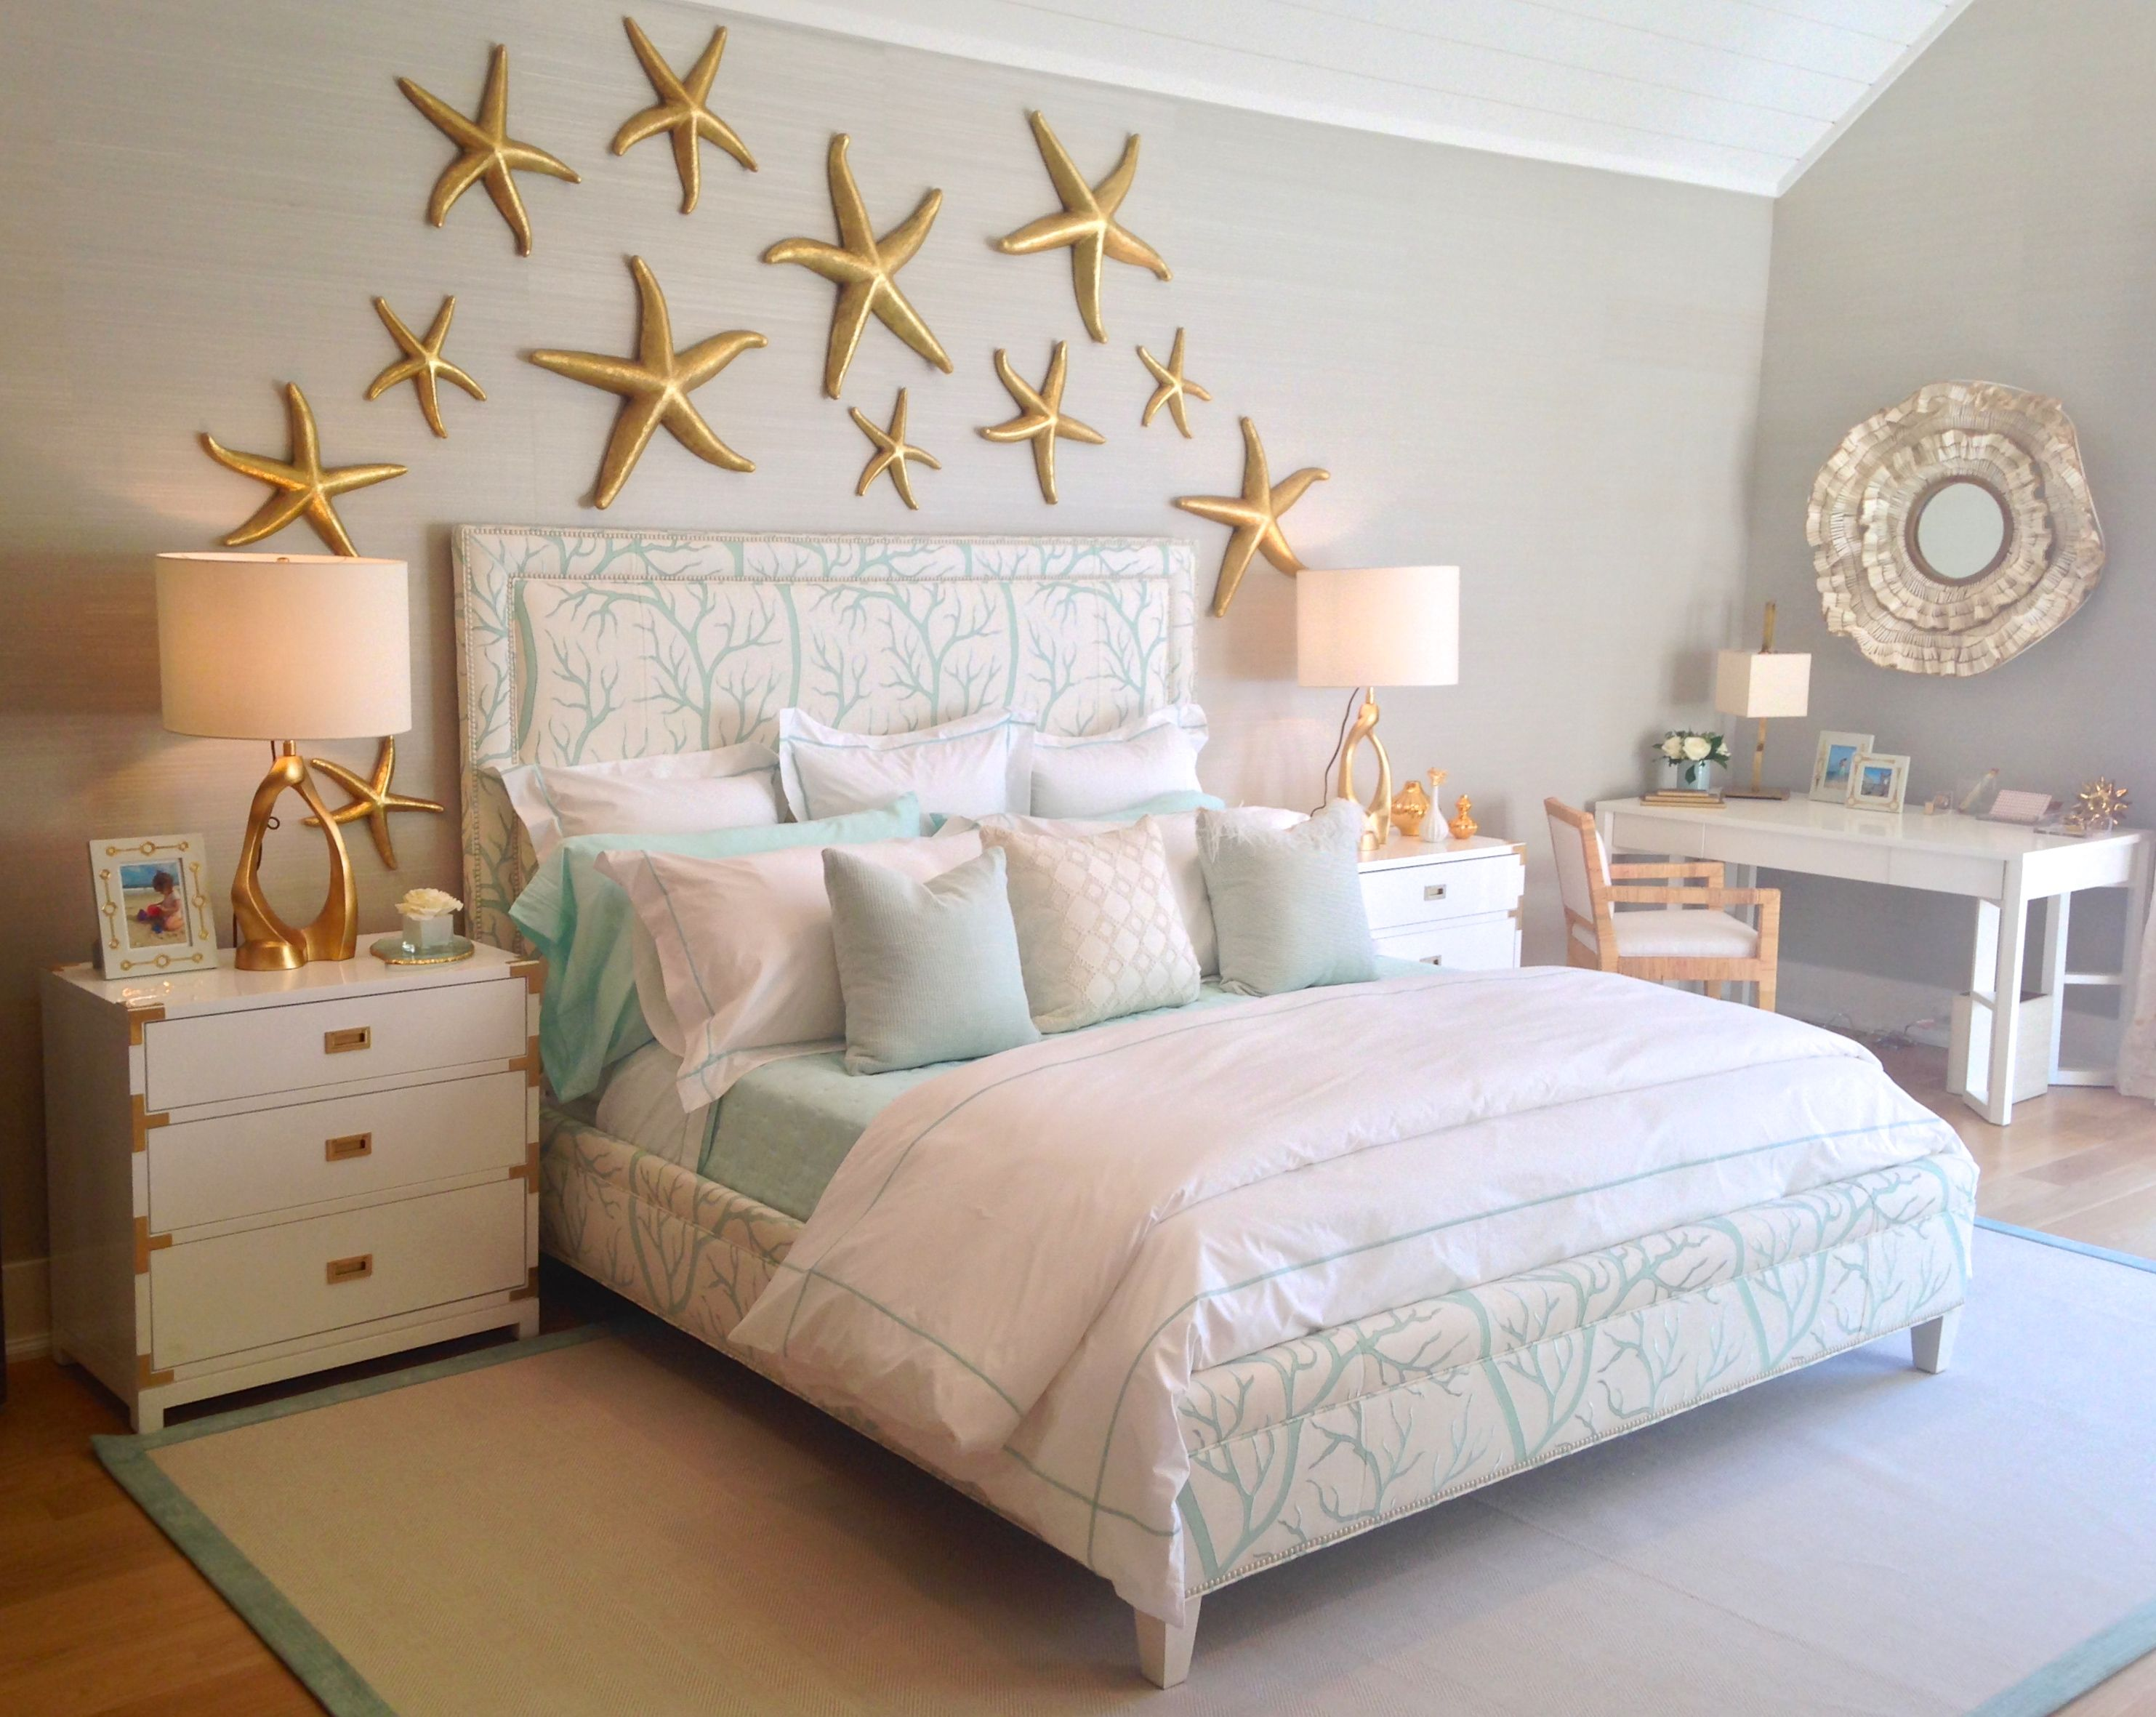 15 Best Images About Turquoise Room Decorations Bedroom Decor